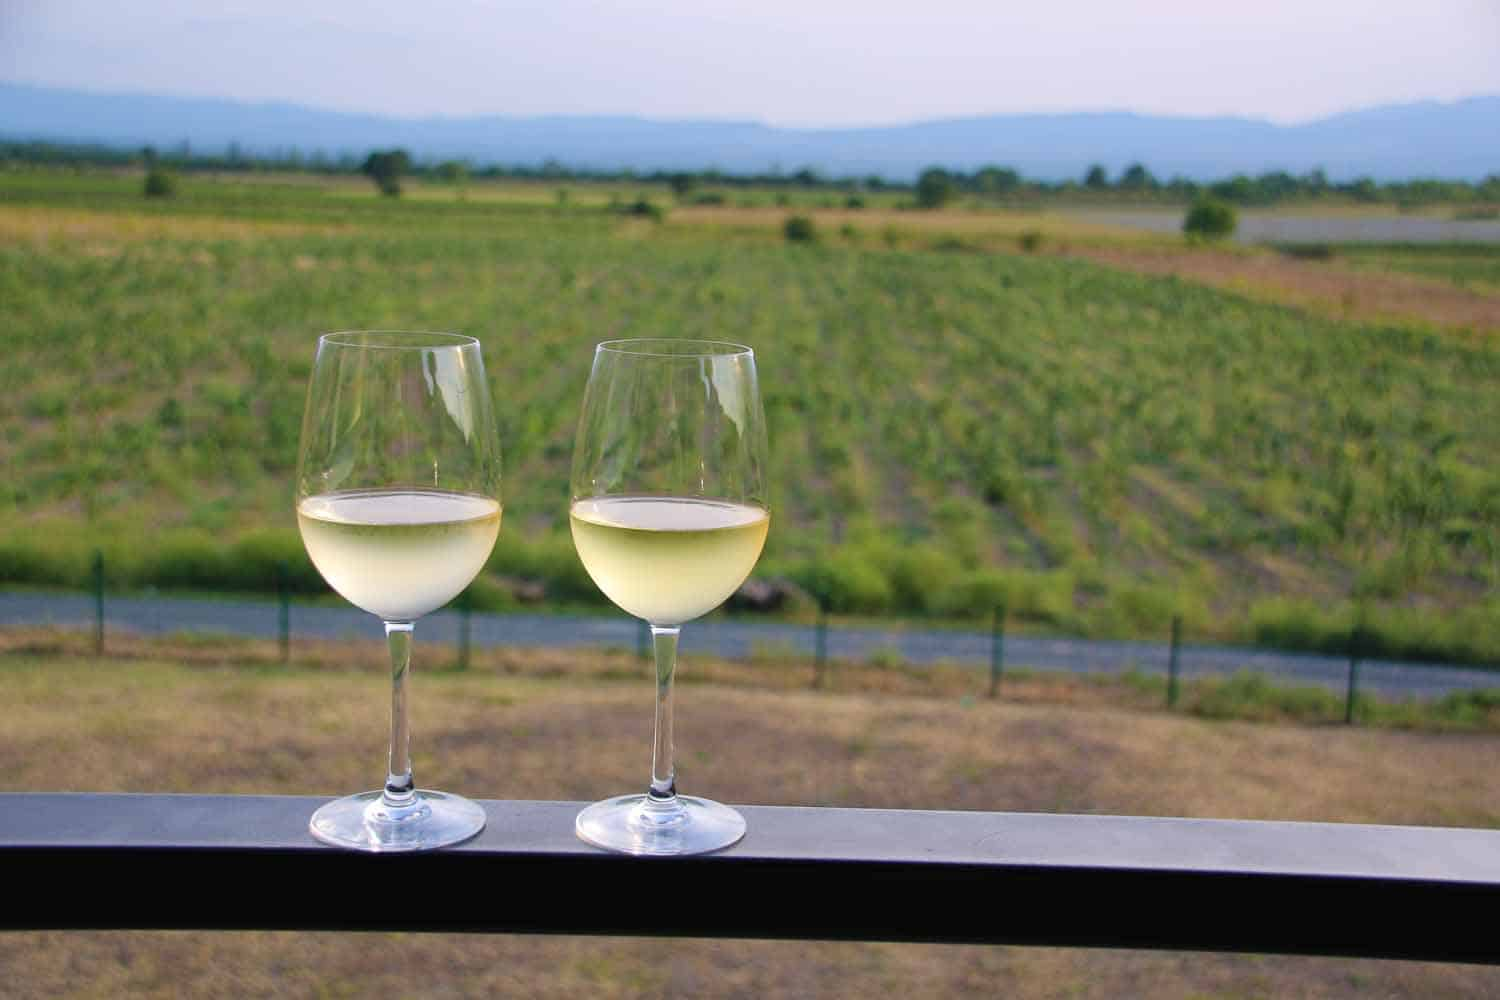 White wine tasting in Kakheti, Georgia